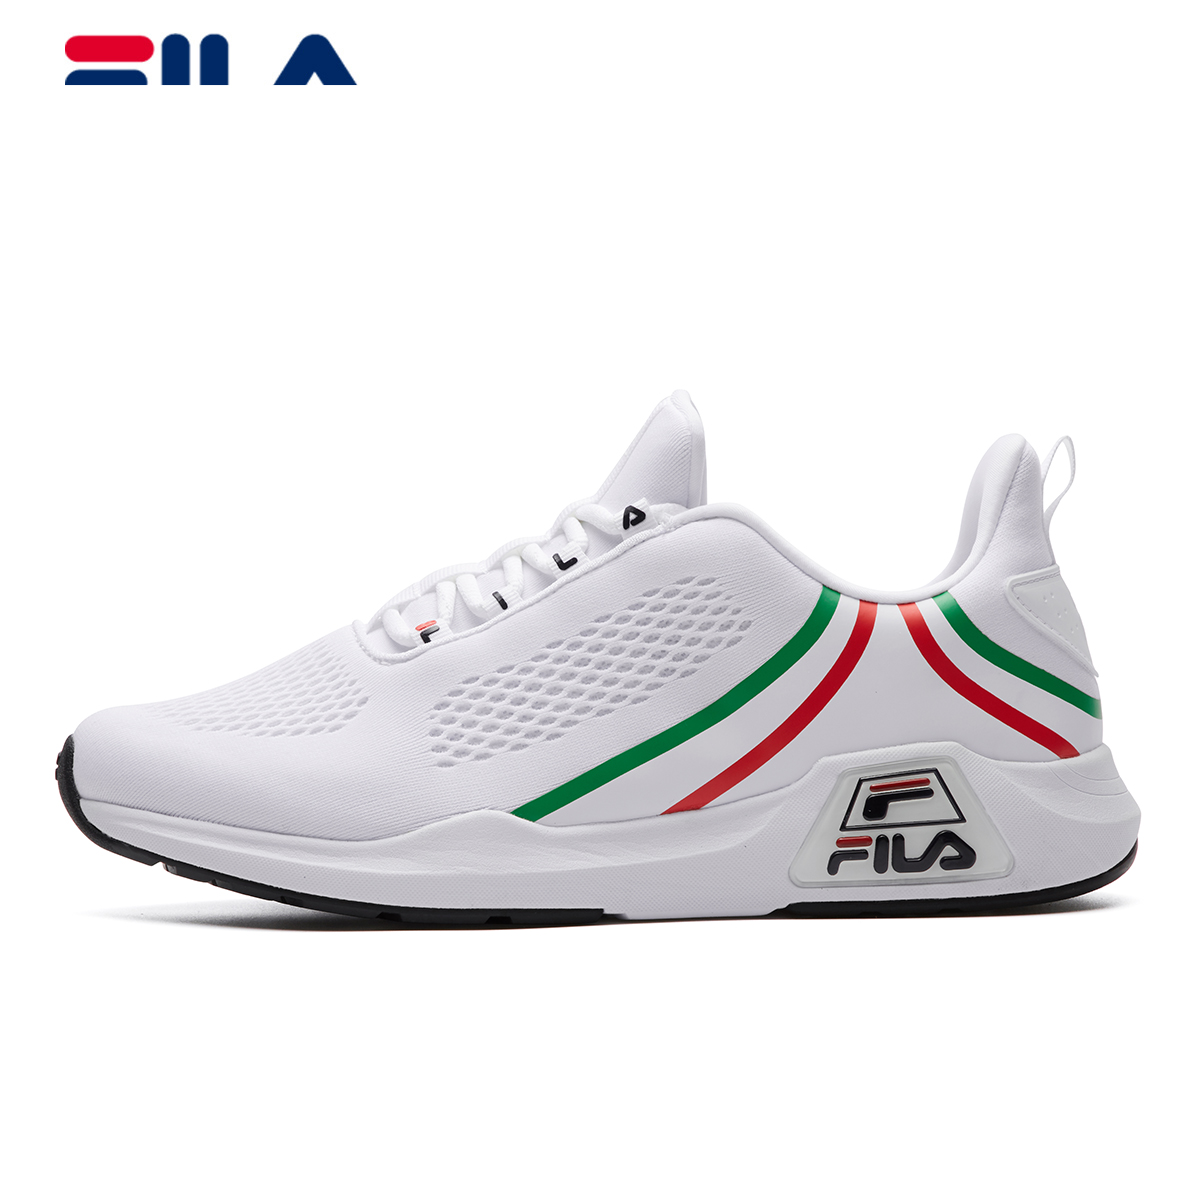 USD 205.89] FILA Fila men's shoes 2018 autumn new trend